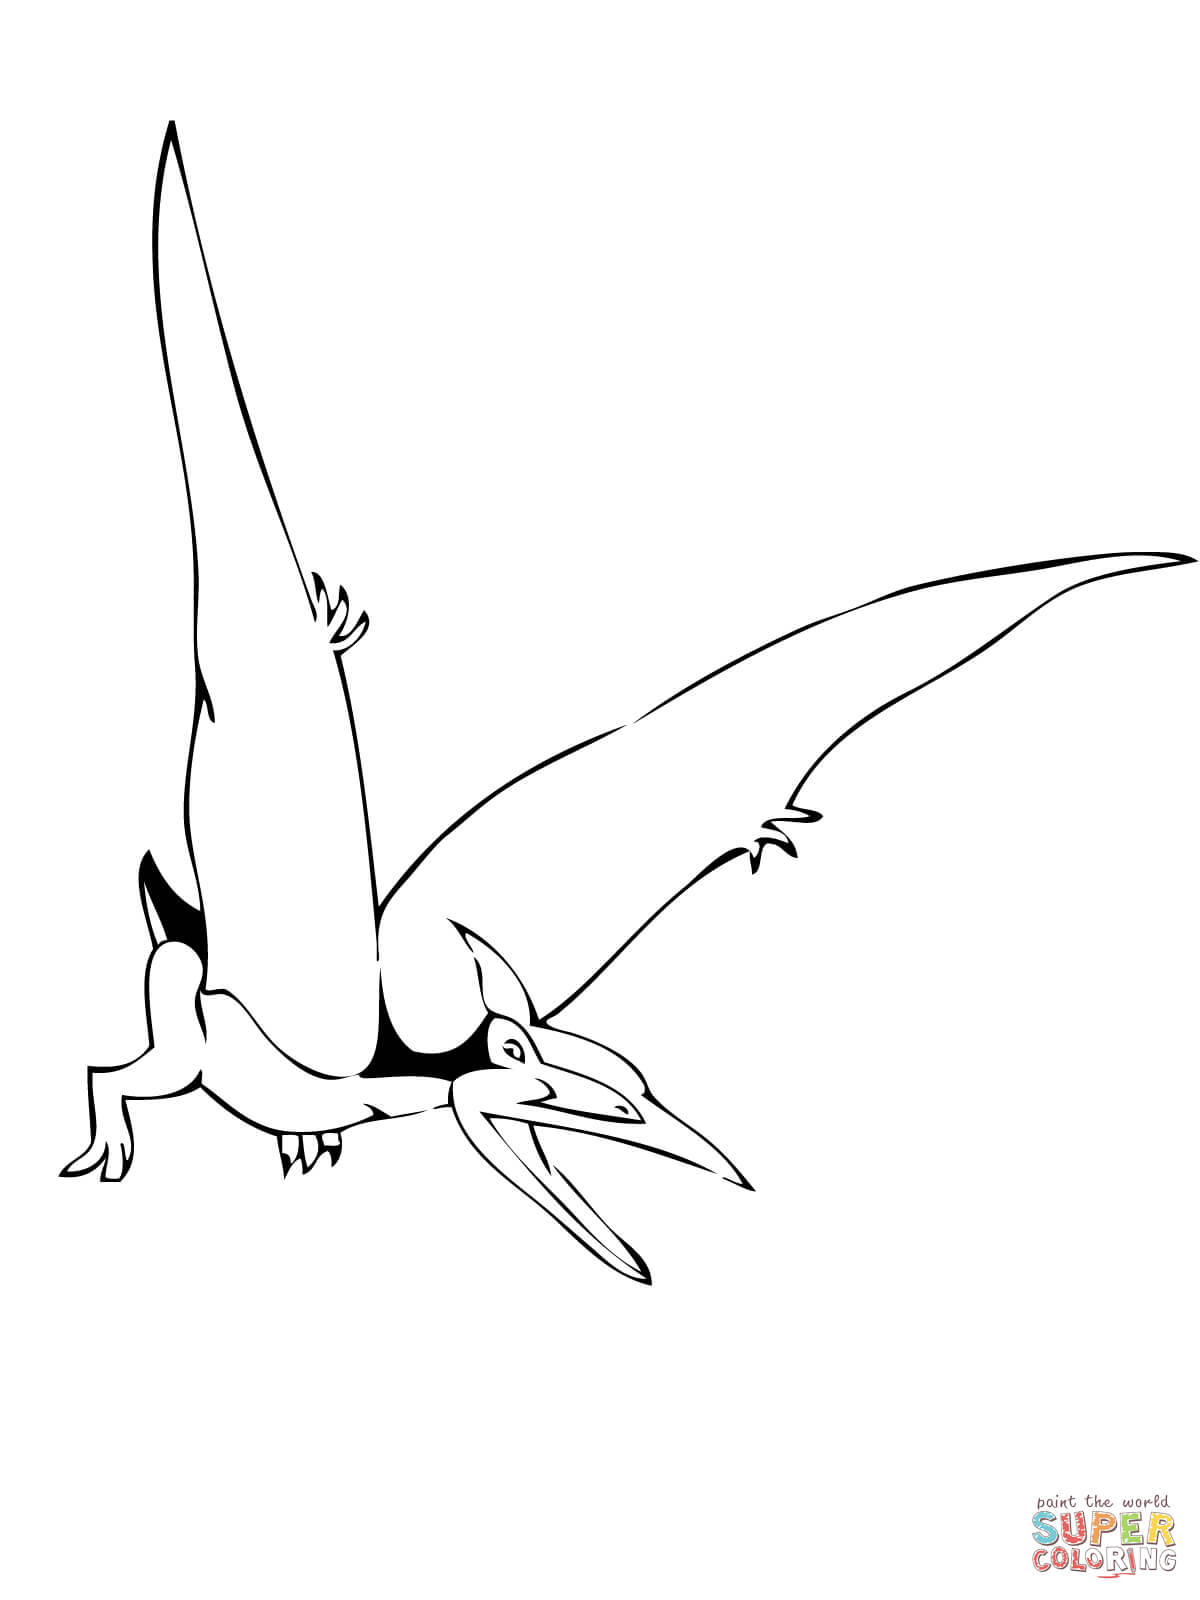 Pterodactyl Drawing At Getdrawings